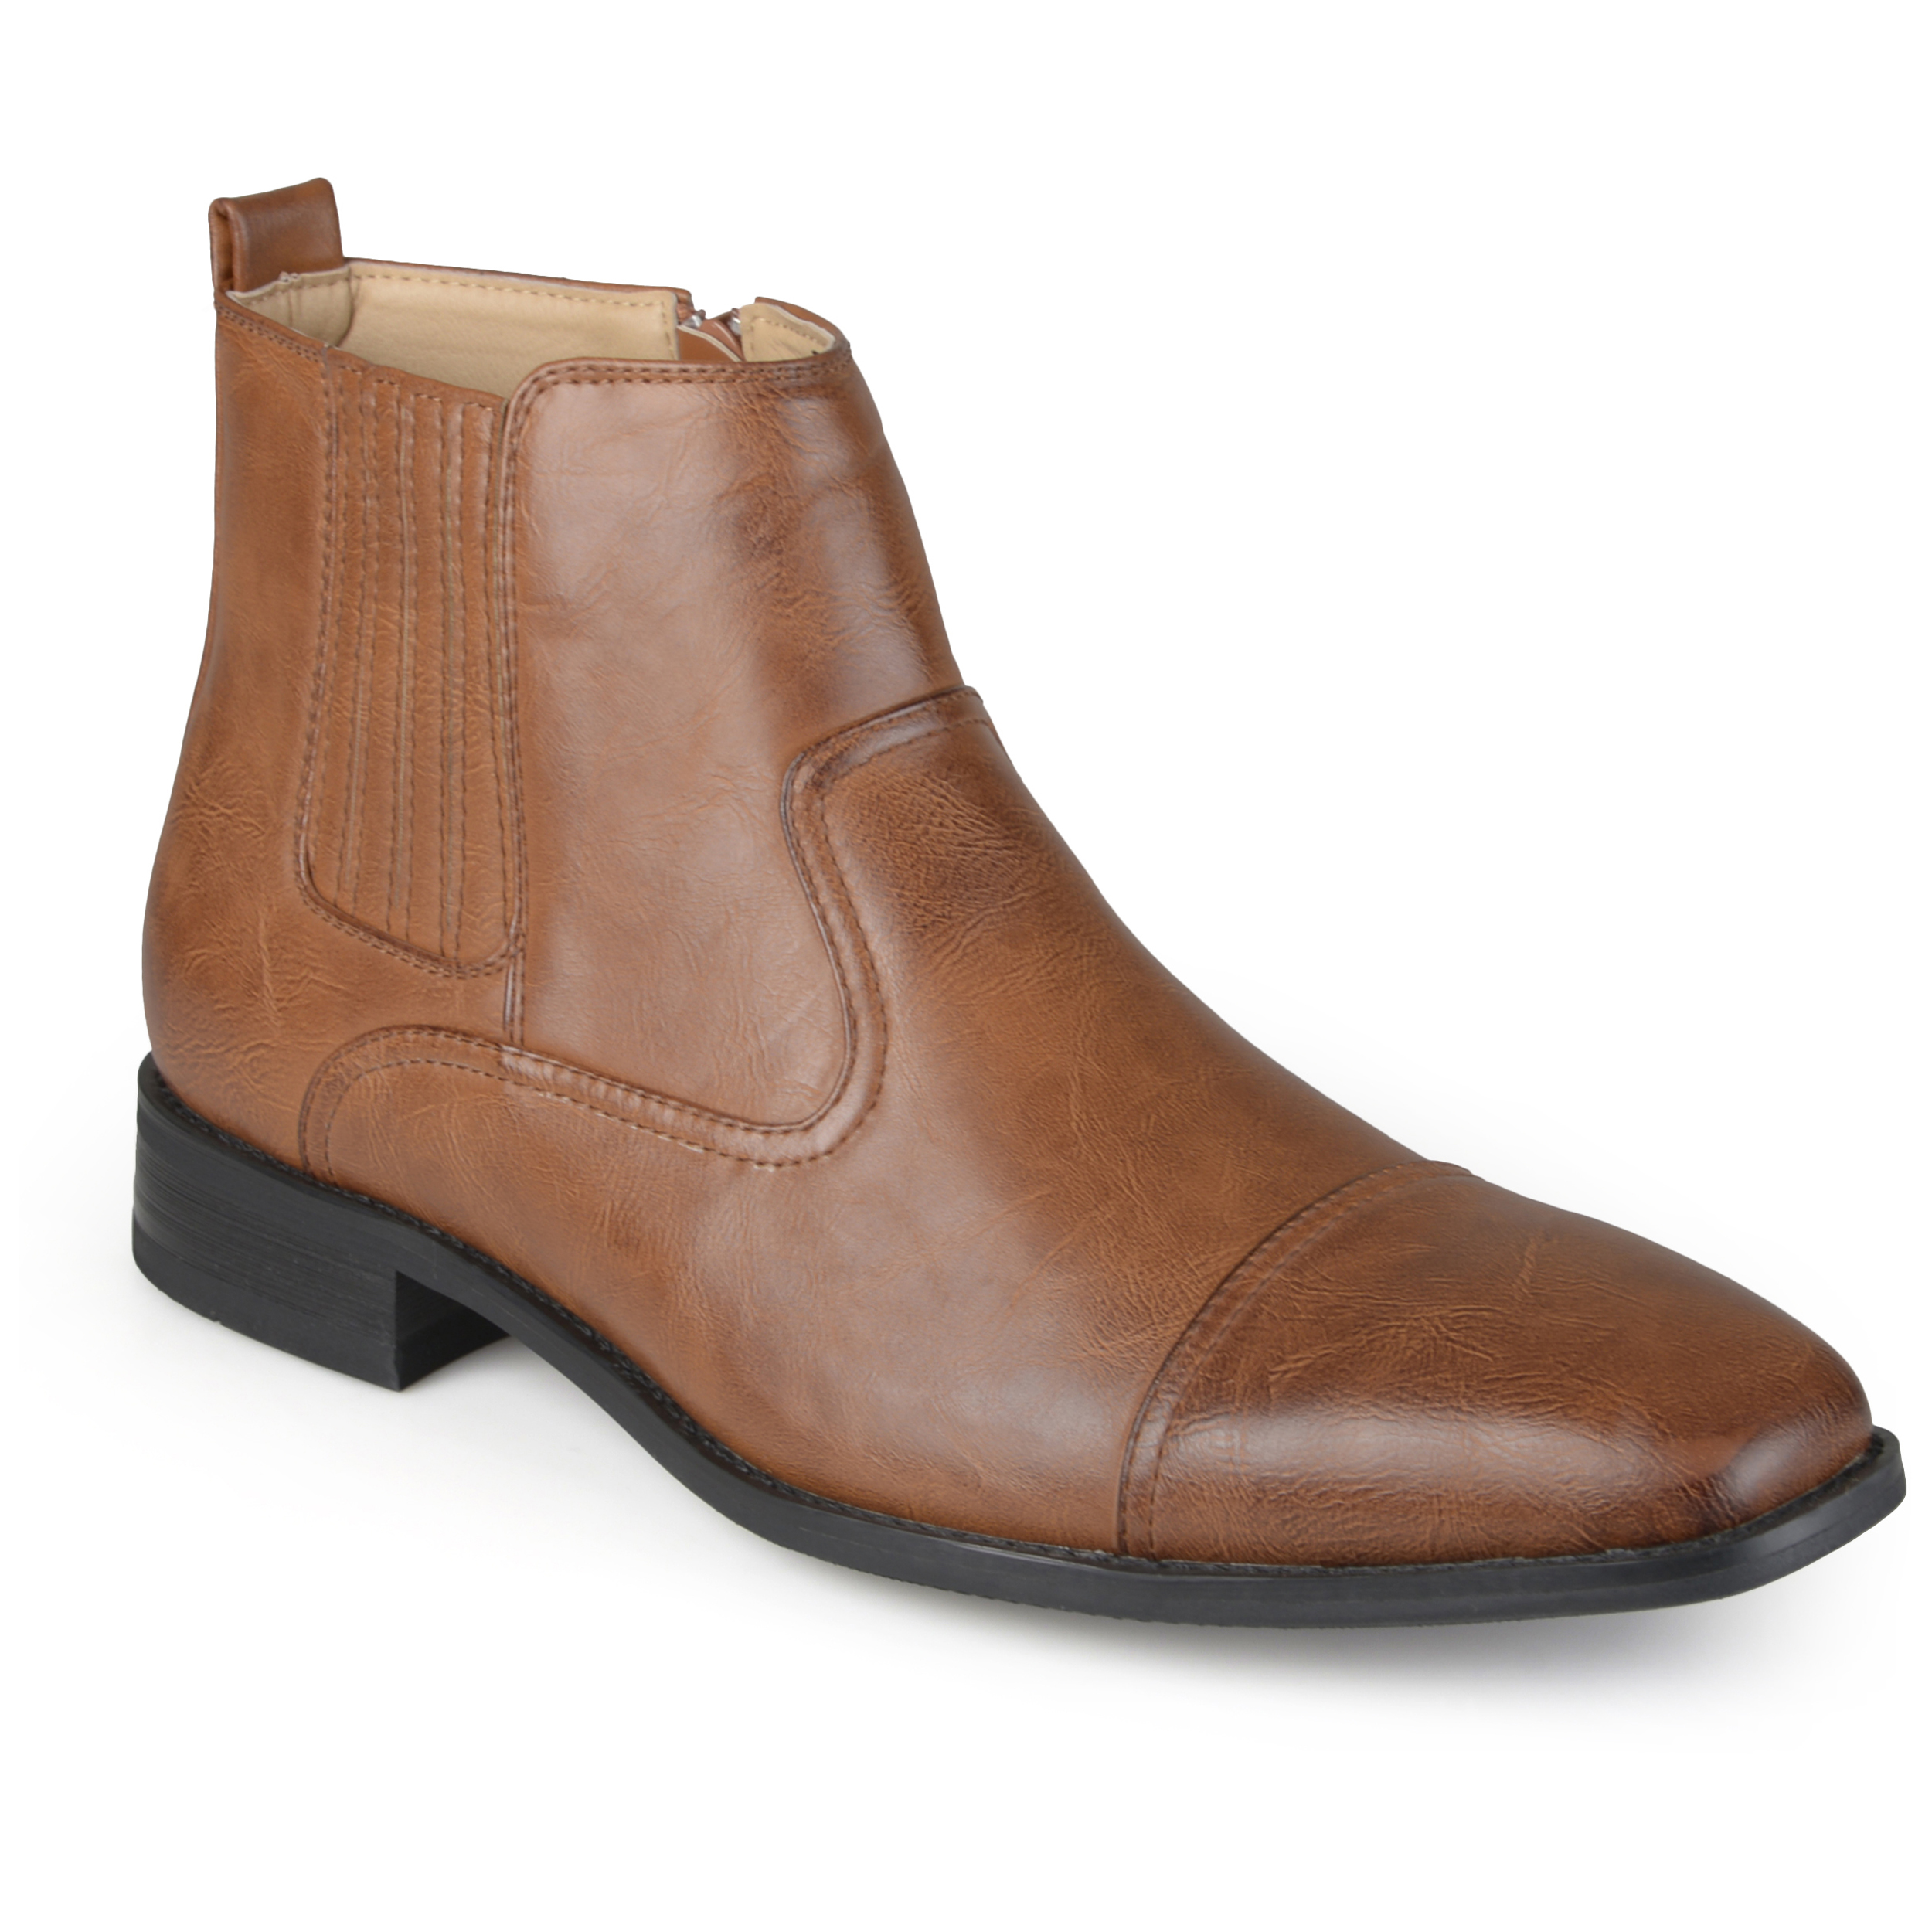 Tan Leather Shoes Men Images Living Room Decorating Ideas